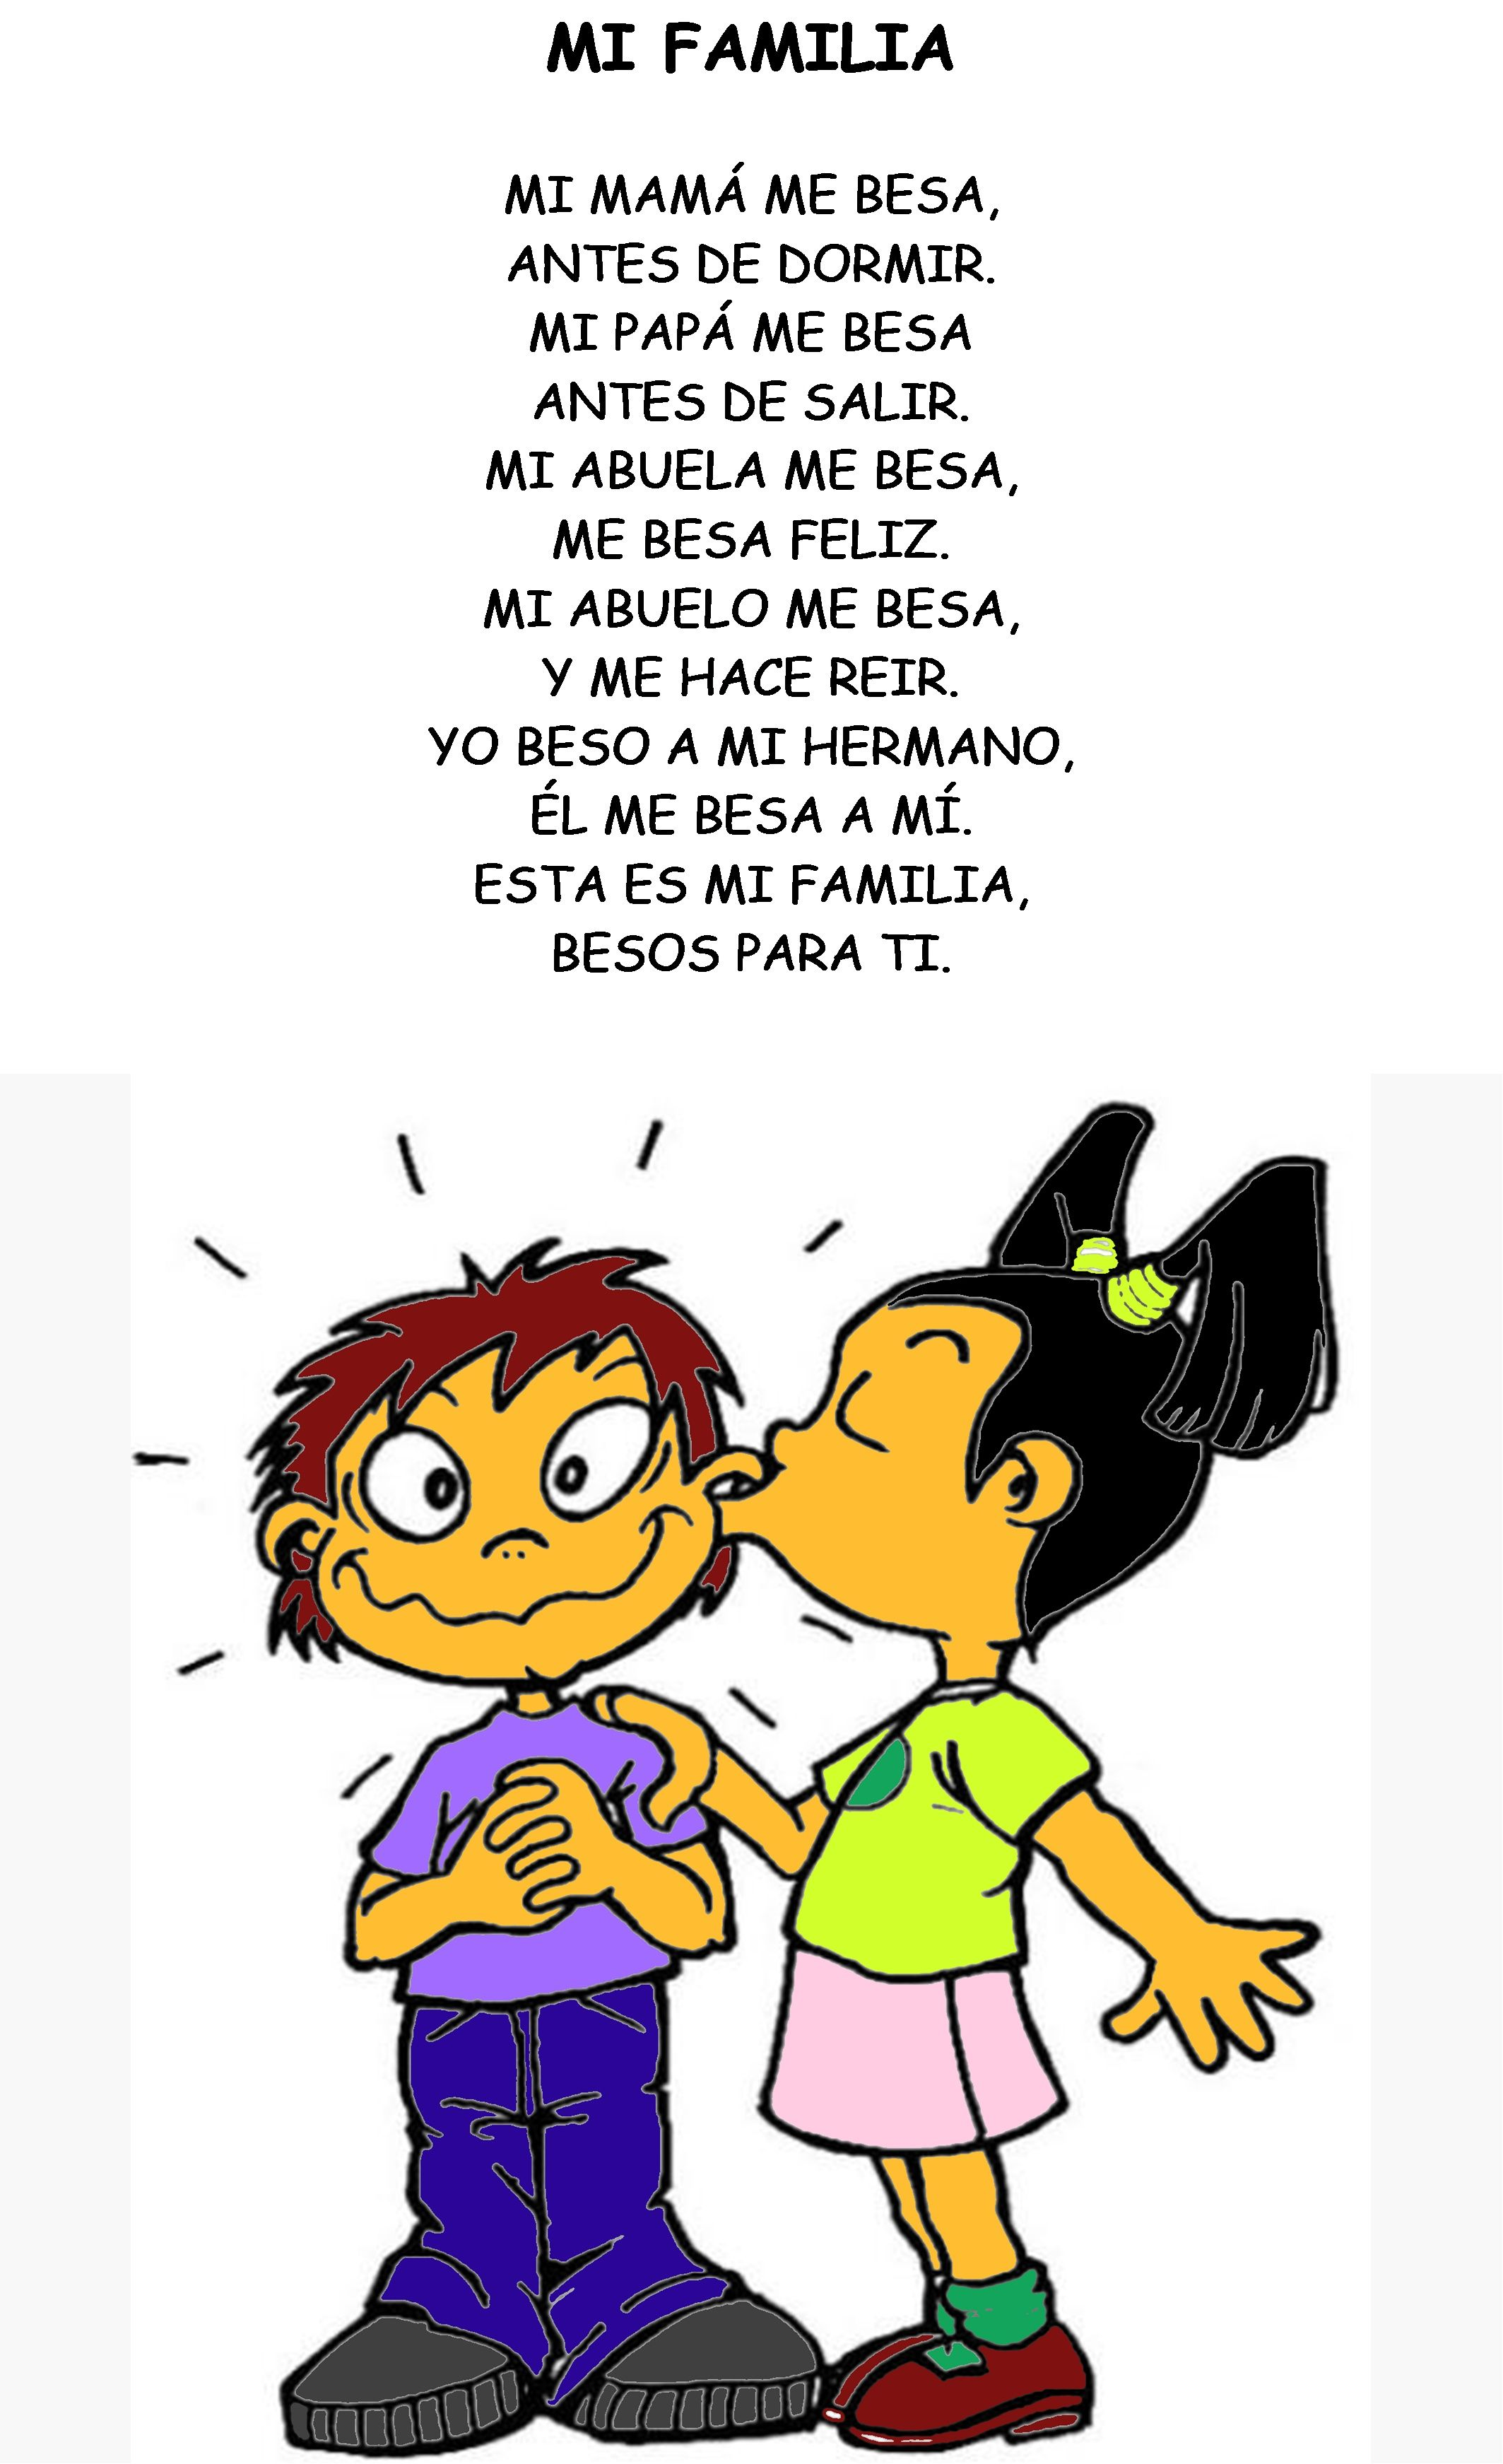 This Poem Has Lots Of Spanish Family Vocabulary Good For